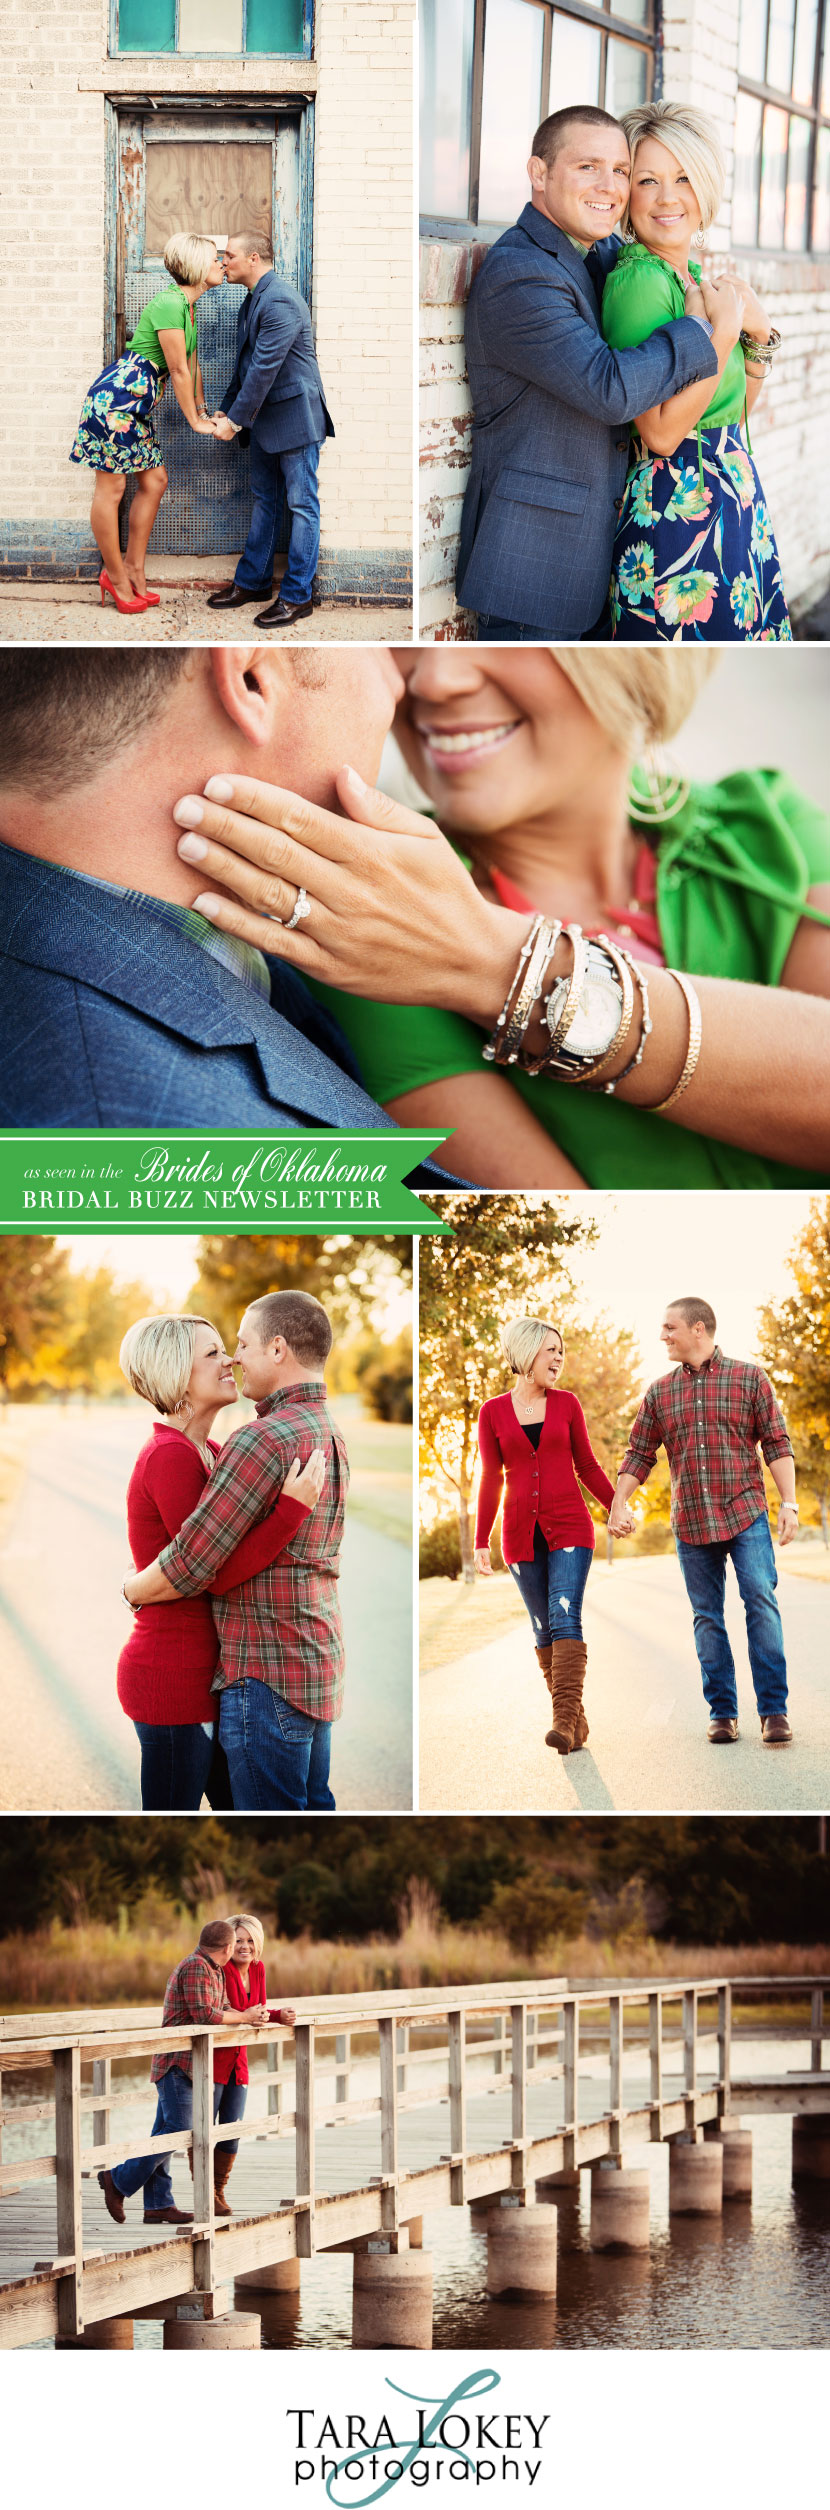 boo_march2014_almostmarried_blog